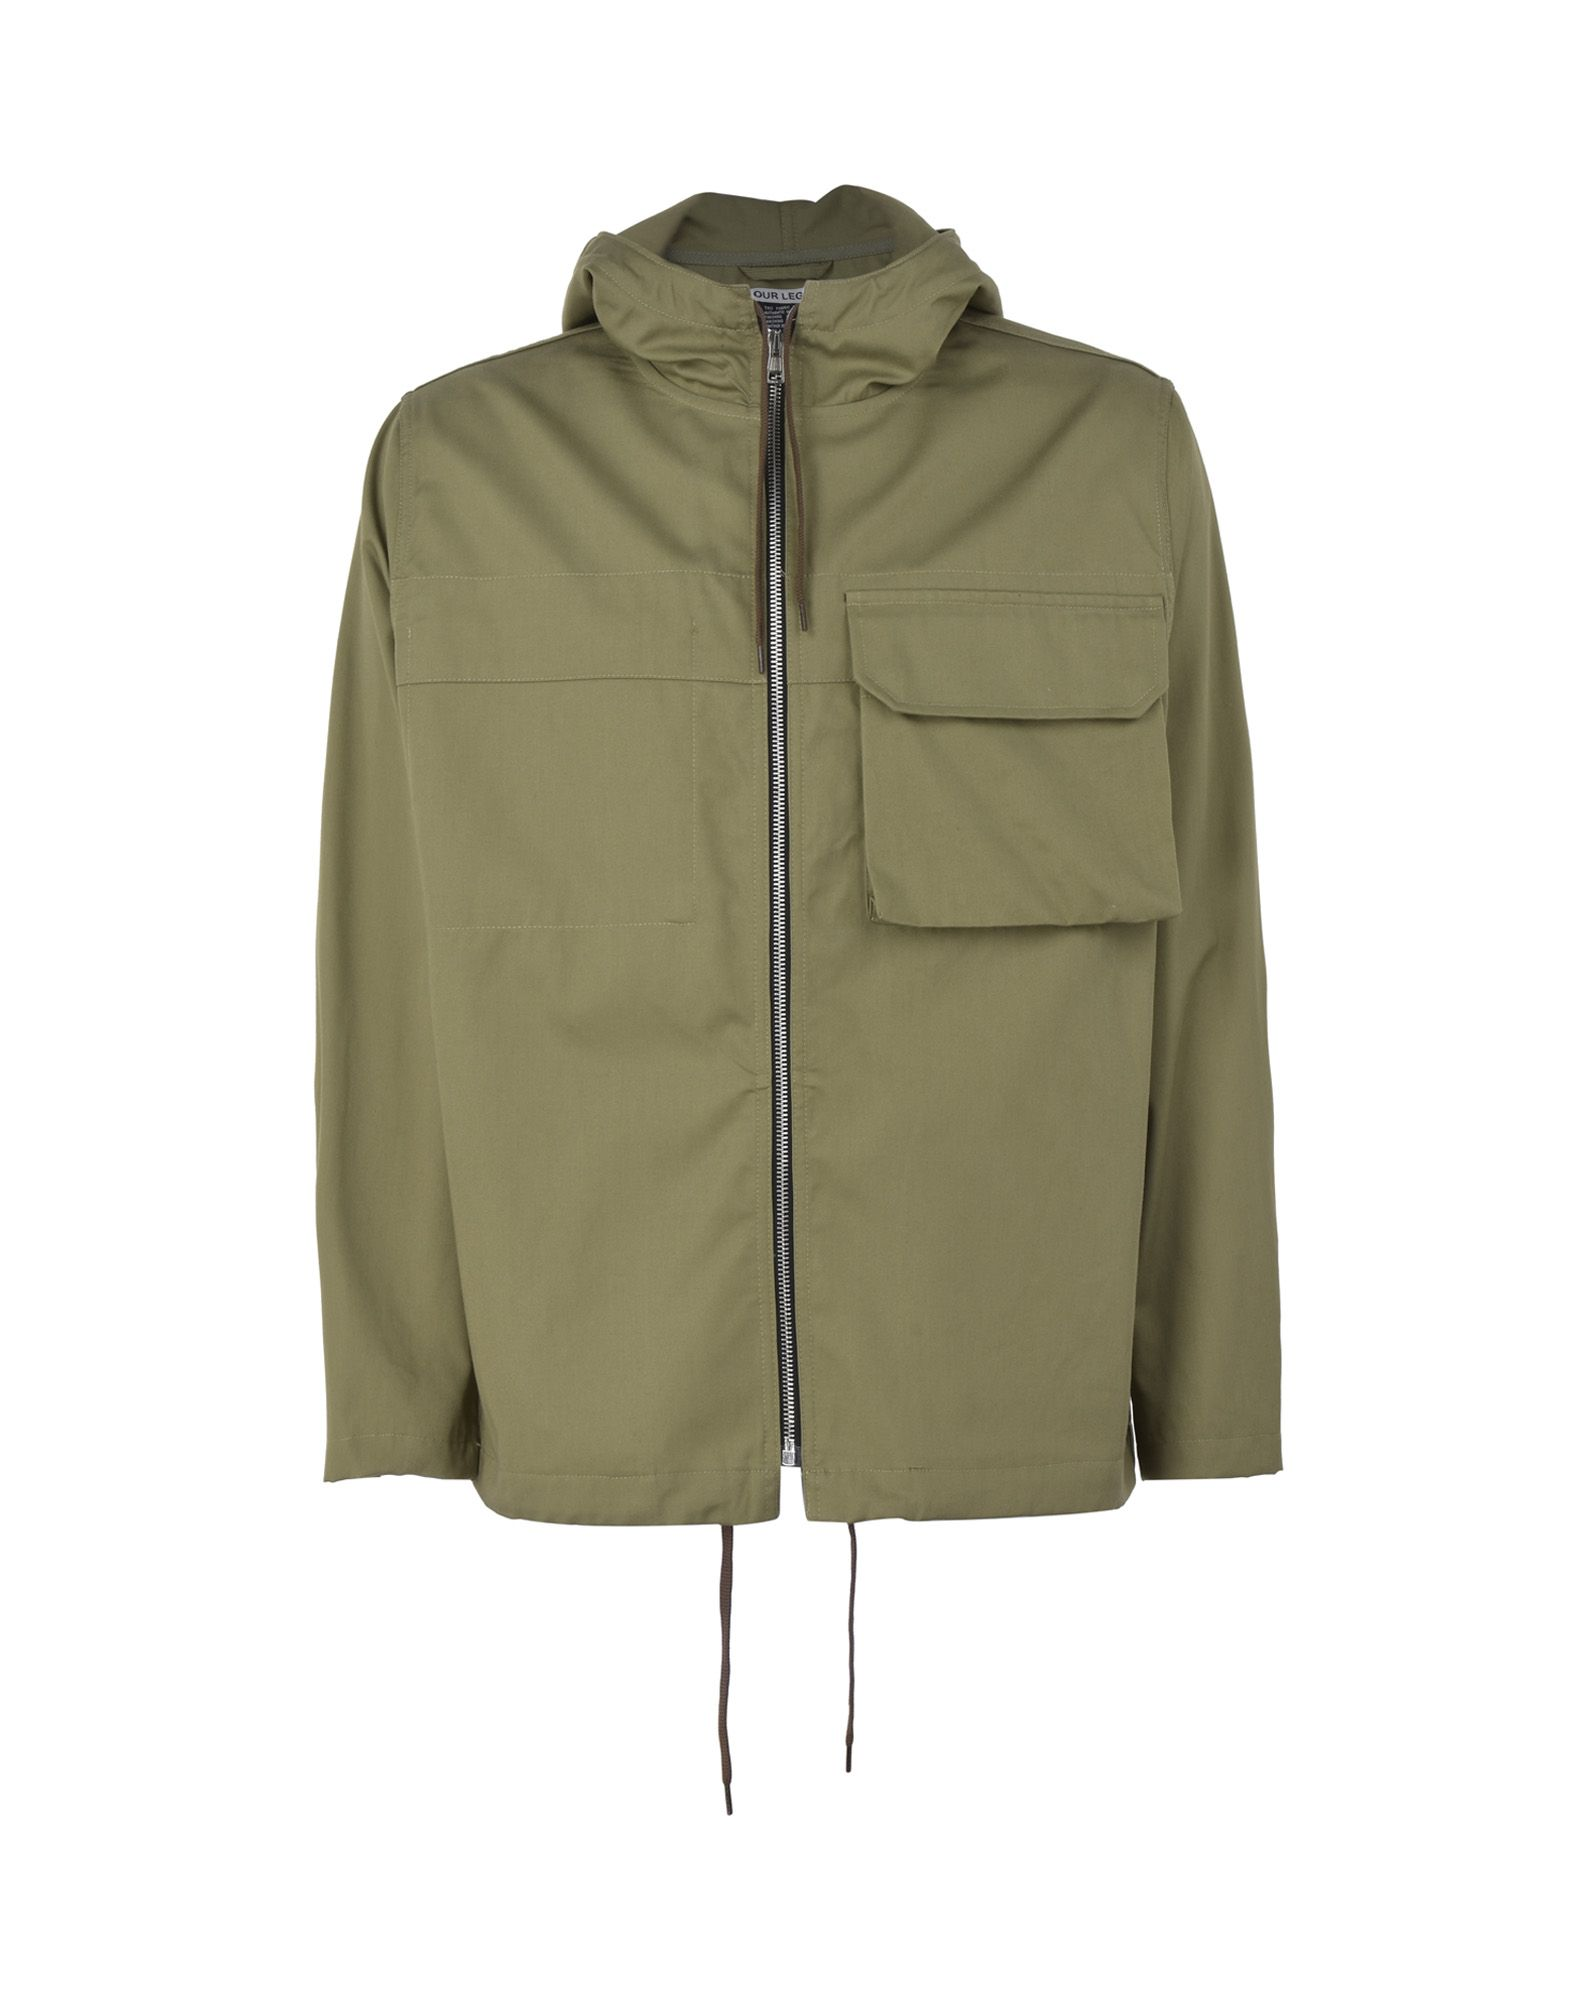 Soprabito Our Legacy Our Legacy Lizard Parka Olive Tactic Twill - Uomo - Acquista online su